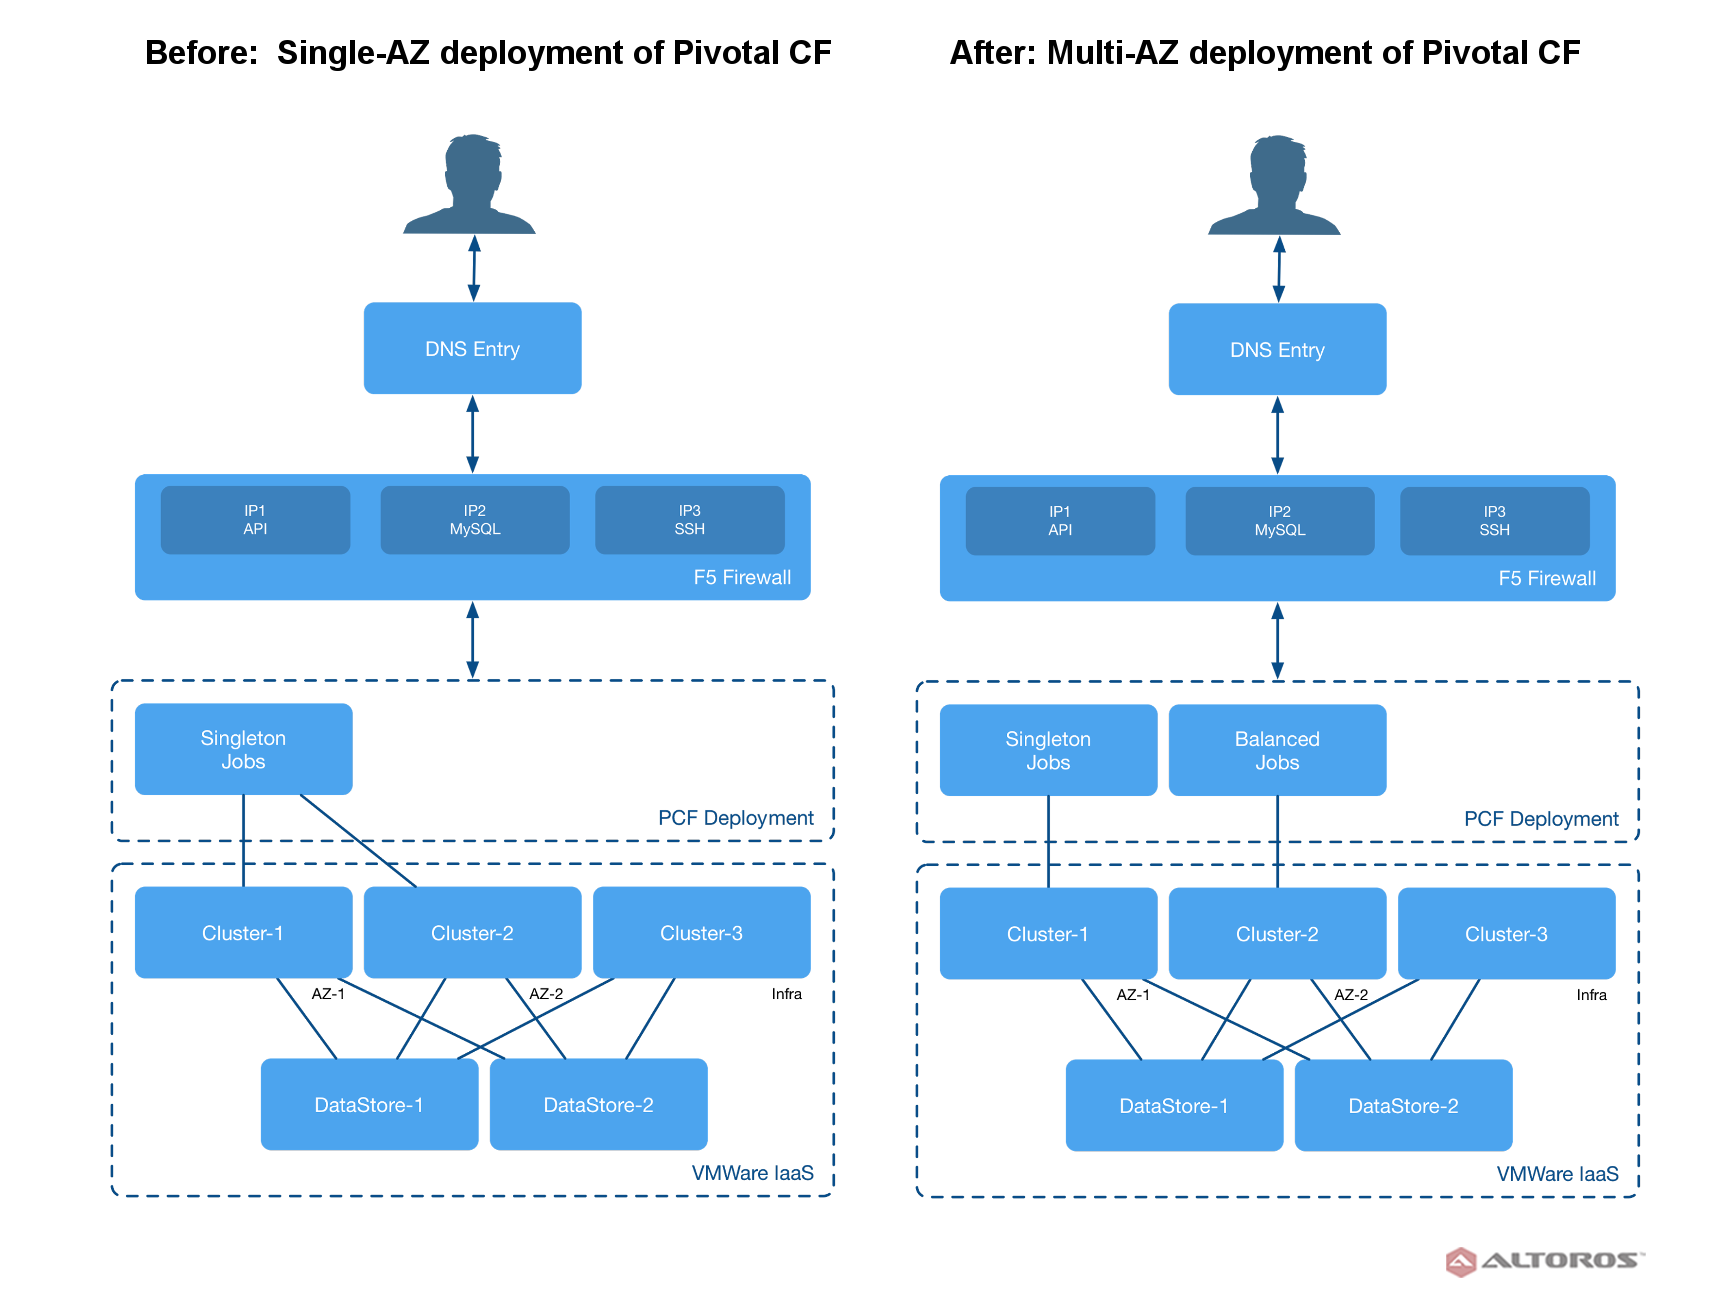 migrating-from-single-to-multi-az-deployment-for-pivotal-cf-v12